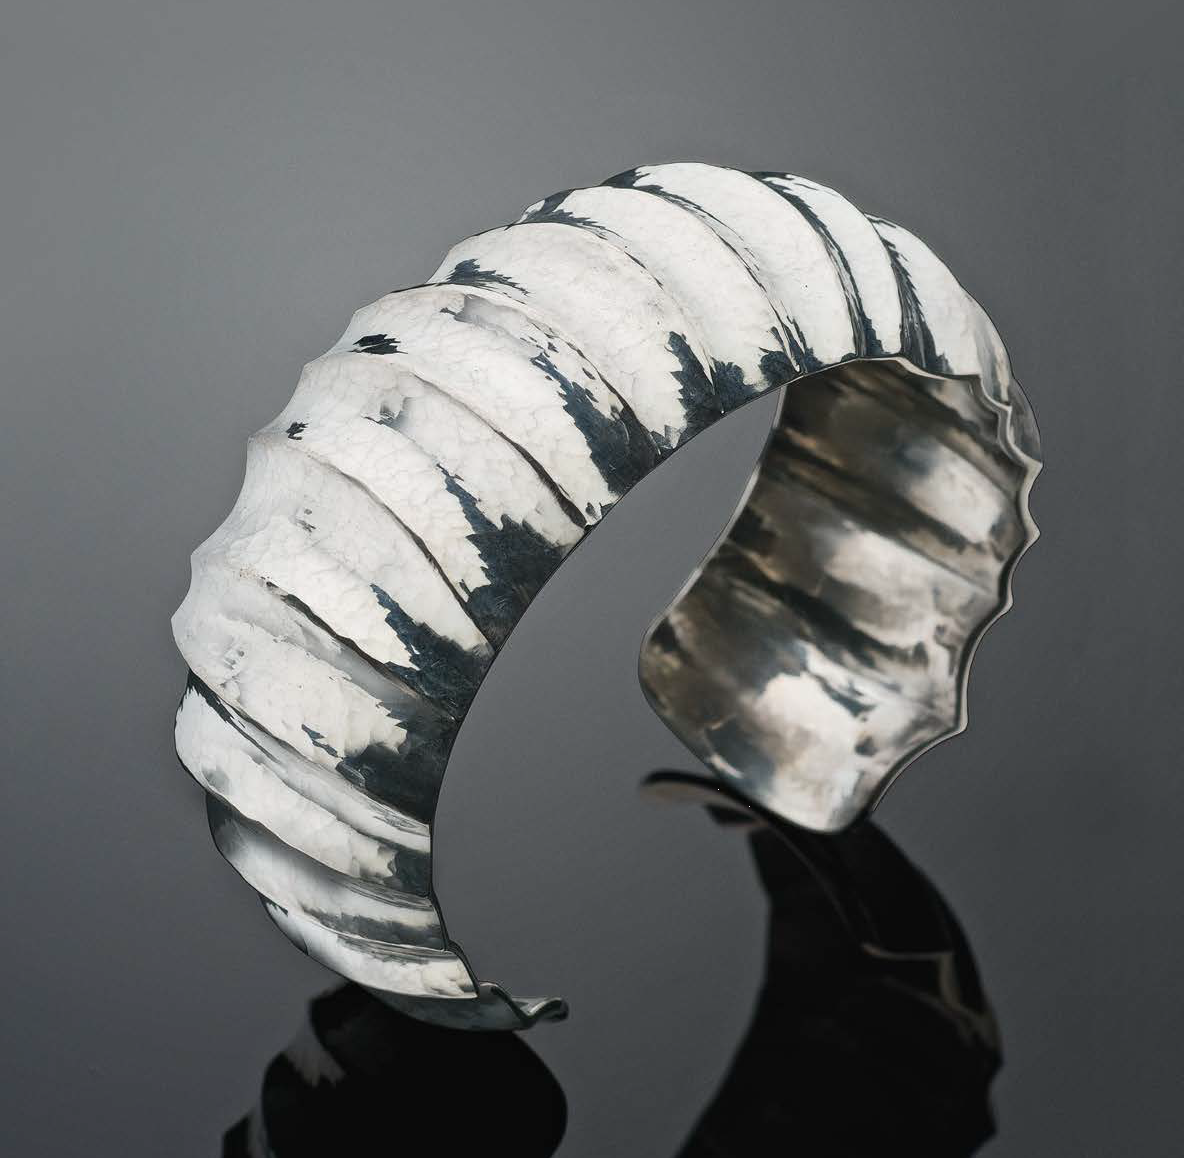 Bill Fretz relied on hammers and stakes to give this Argentium Fluted Cuff its mesmerizing handwrought texture. The project originally appeared in Lapidary Journal Jewelry Artist April 2011 and is now also available in the compilation 10 Sensational Silver Jewelry Making Projects Using Low-Tarnish Argentium® or Traditional Sterling. Photo: Jim Lawson